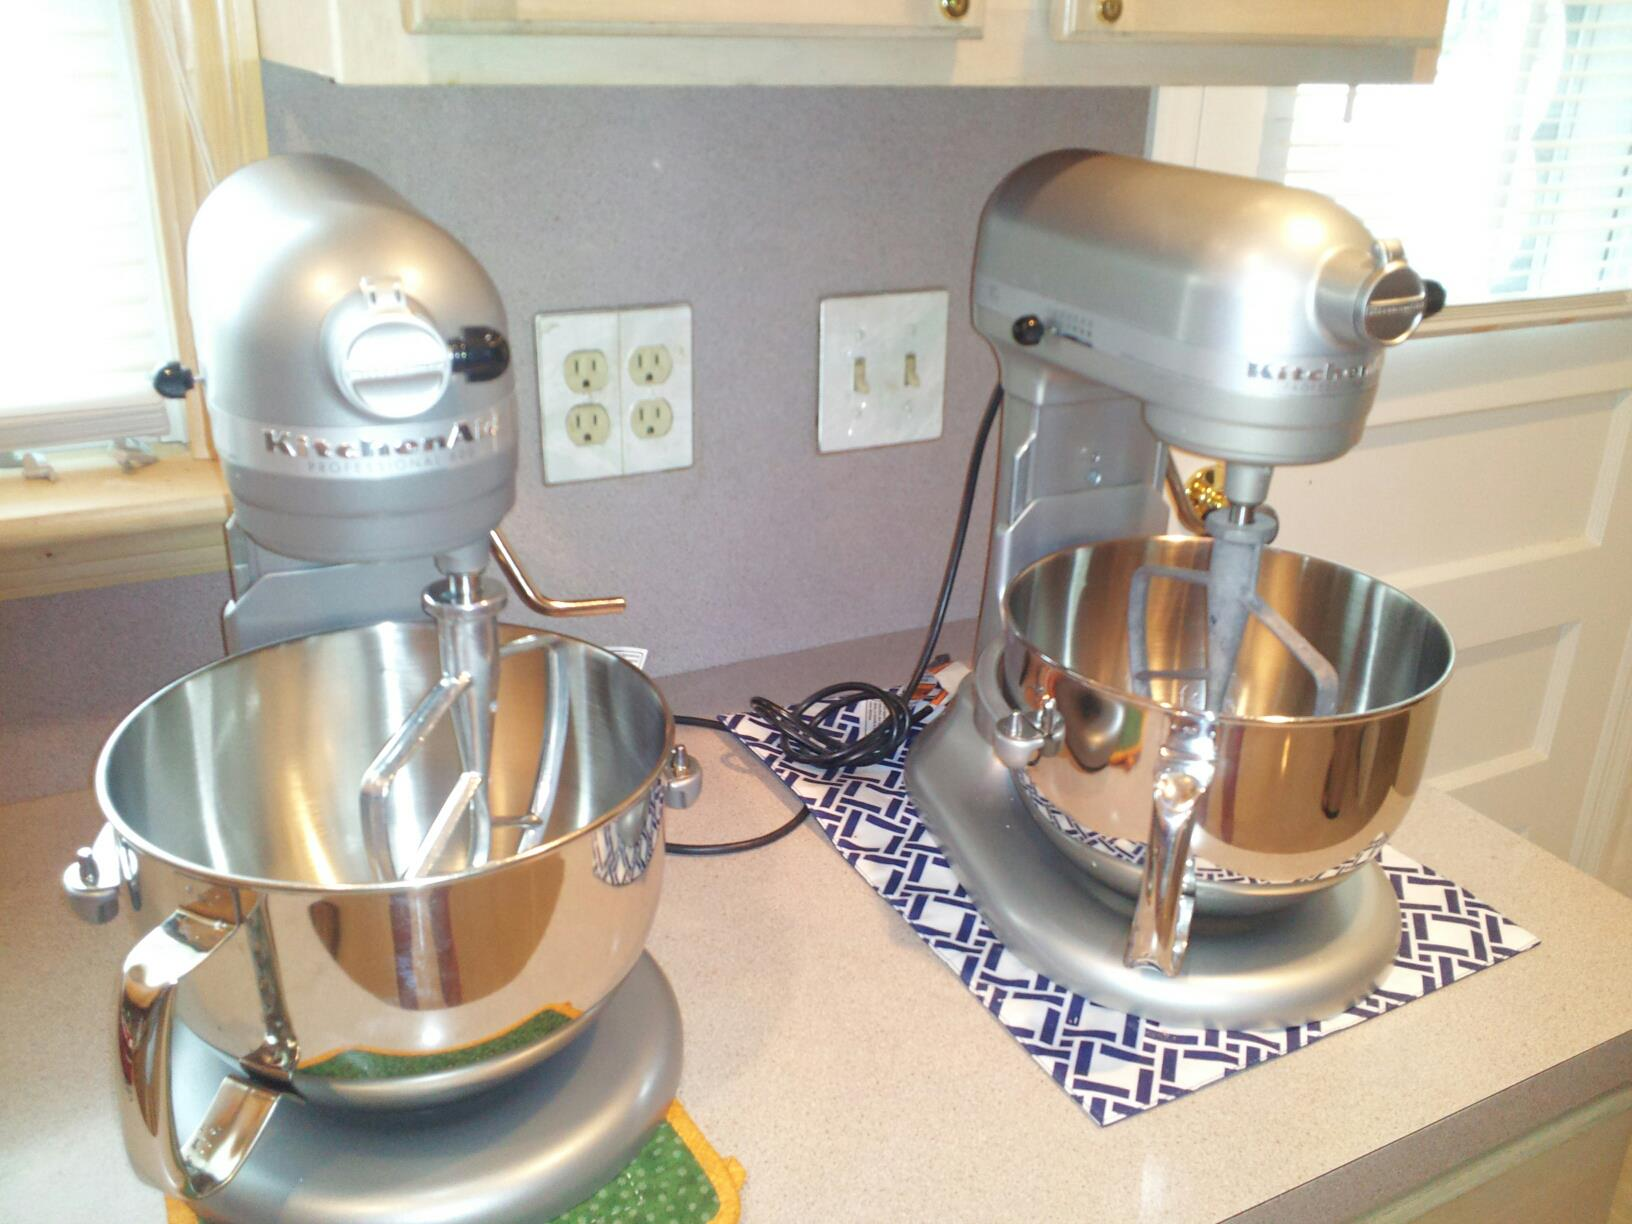 my twin set of 6 qt. kitchenaid stand mixers : the cake dealer